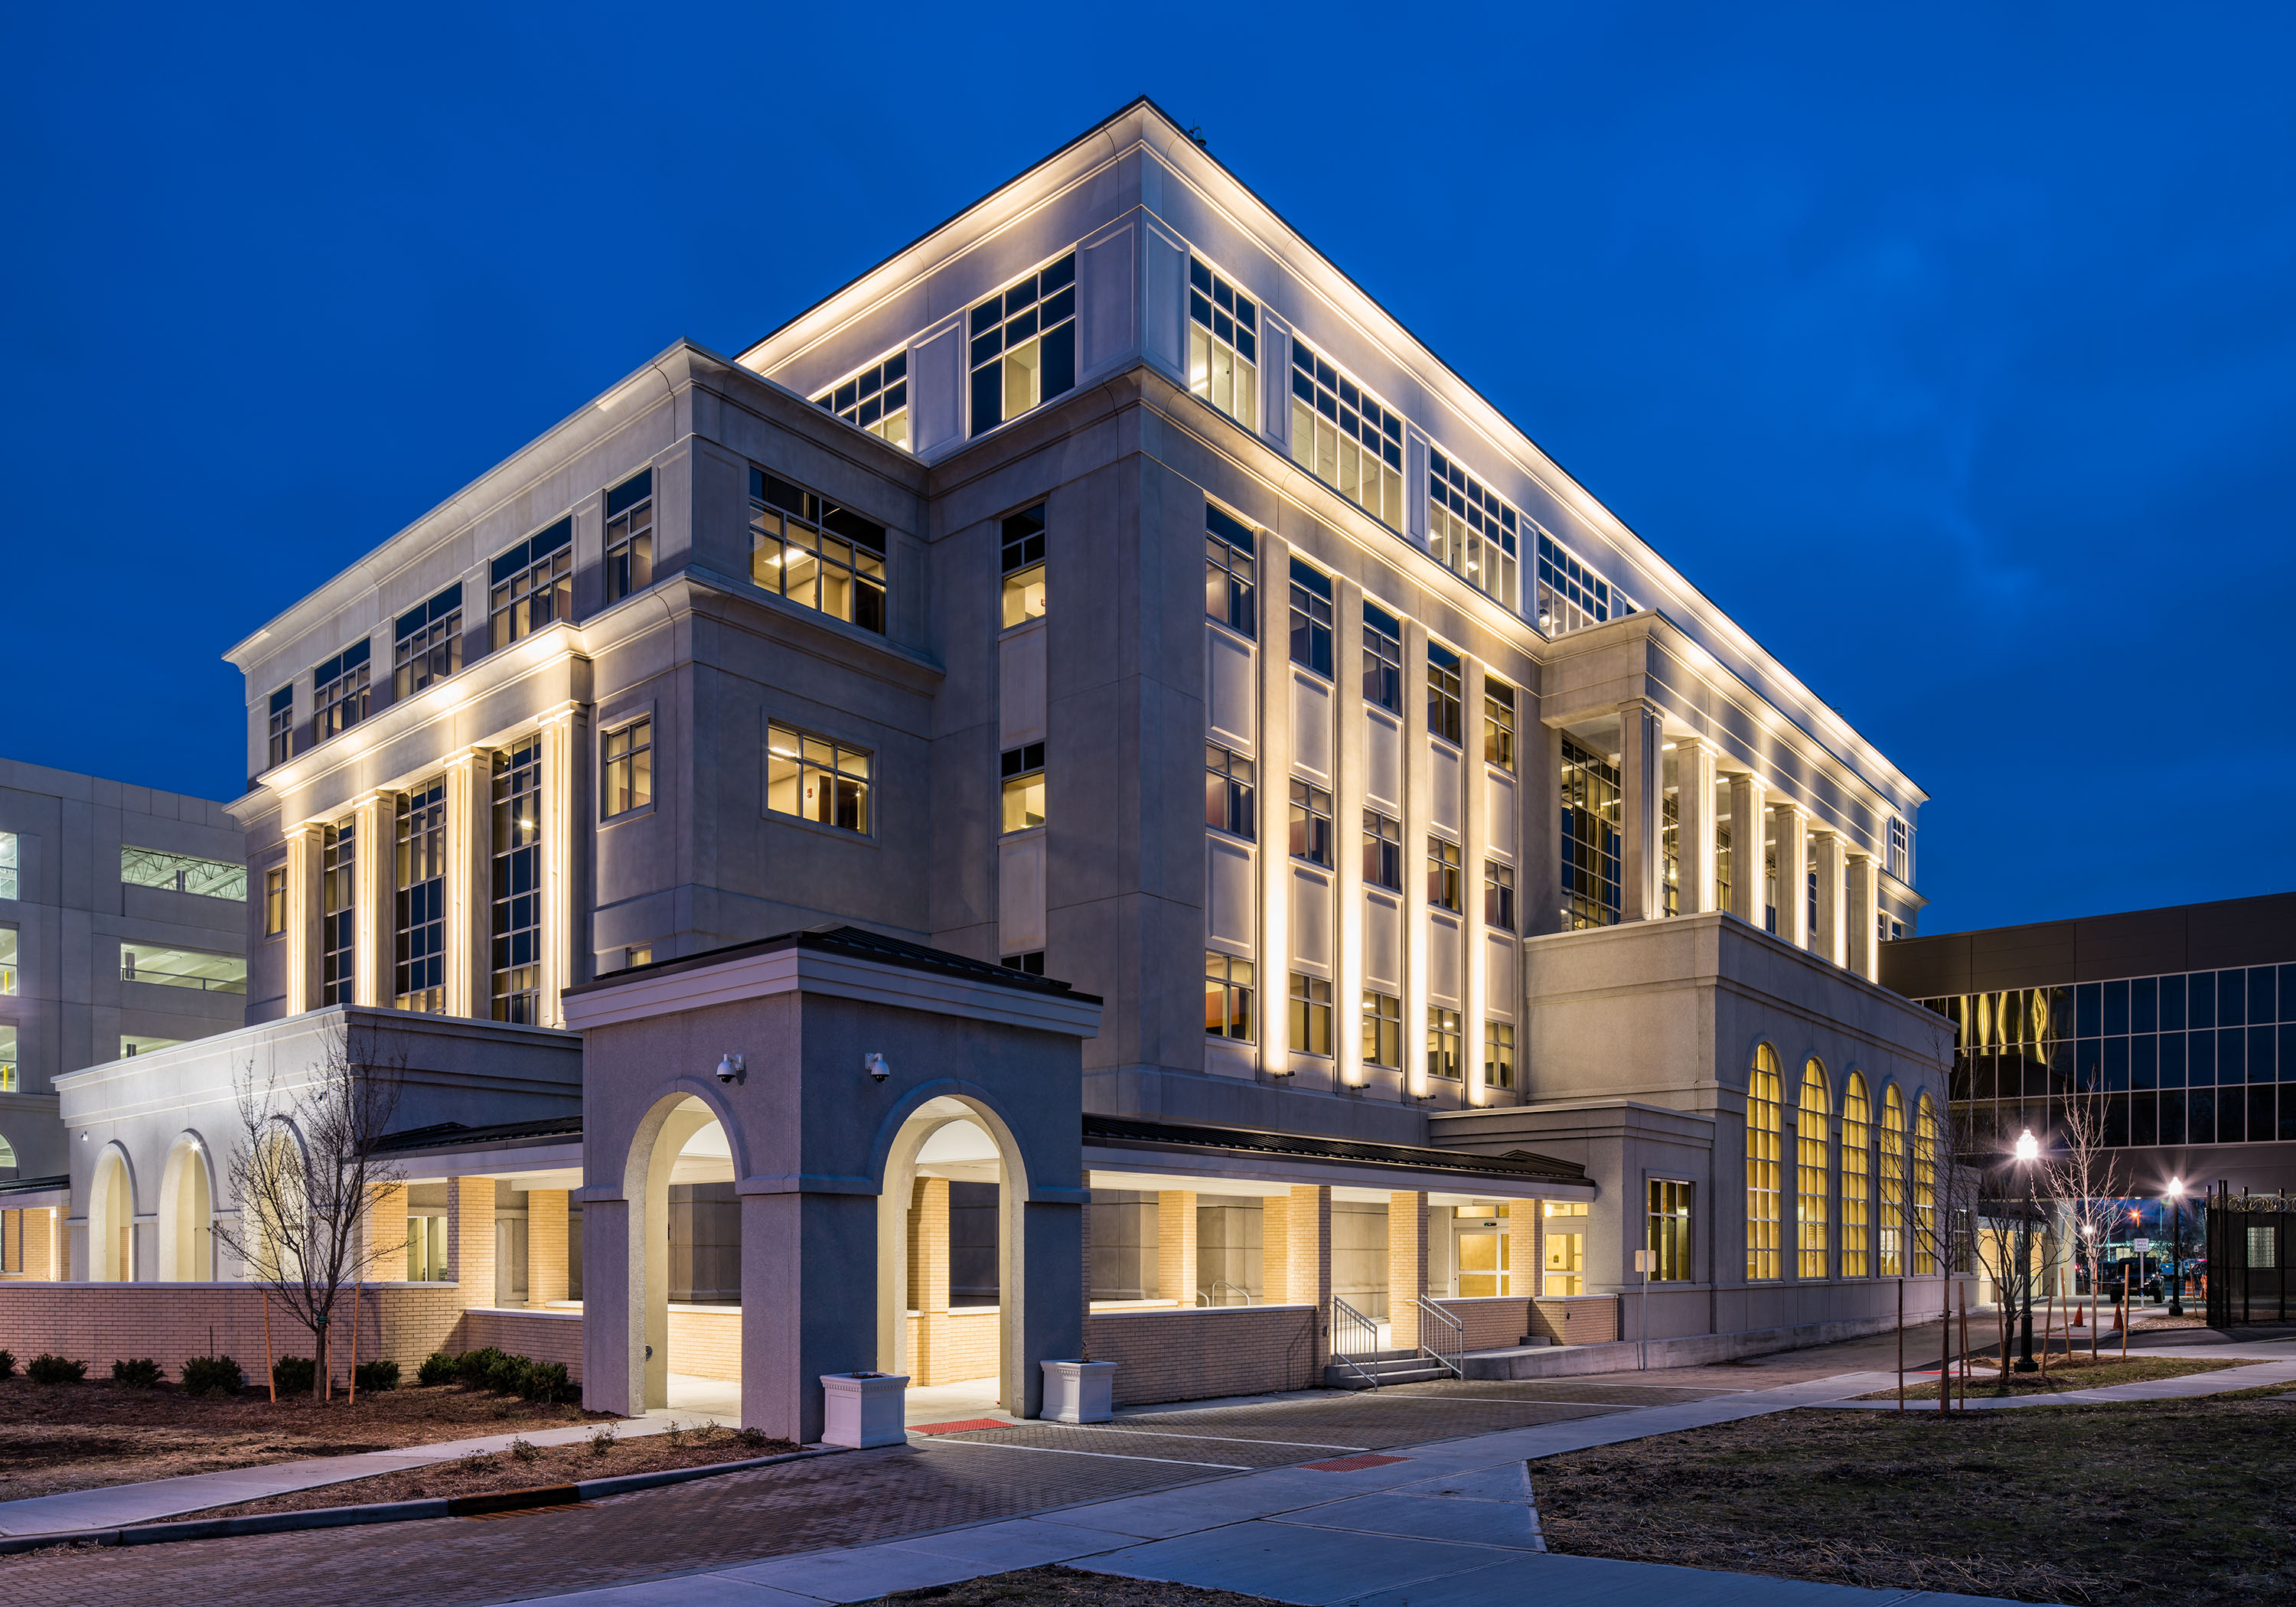 New 140 Million Justice Center Designed By Rsc Architects